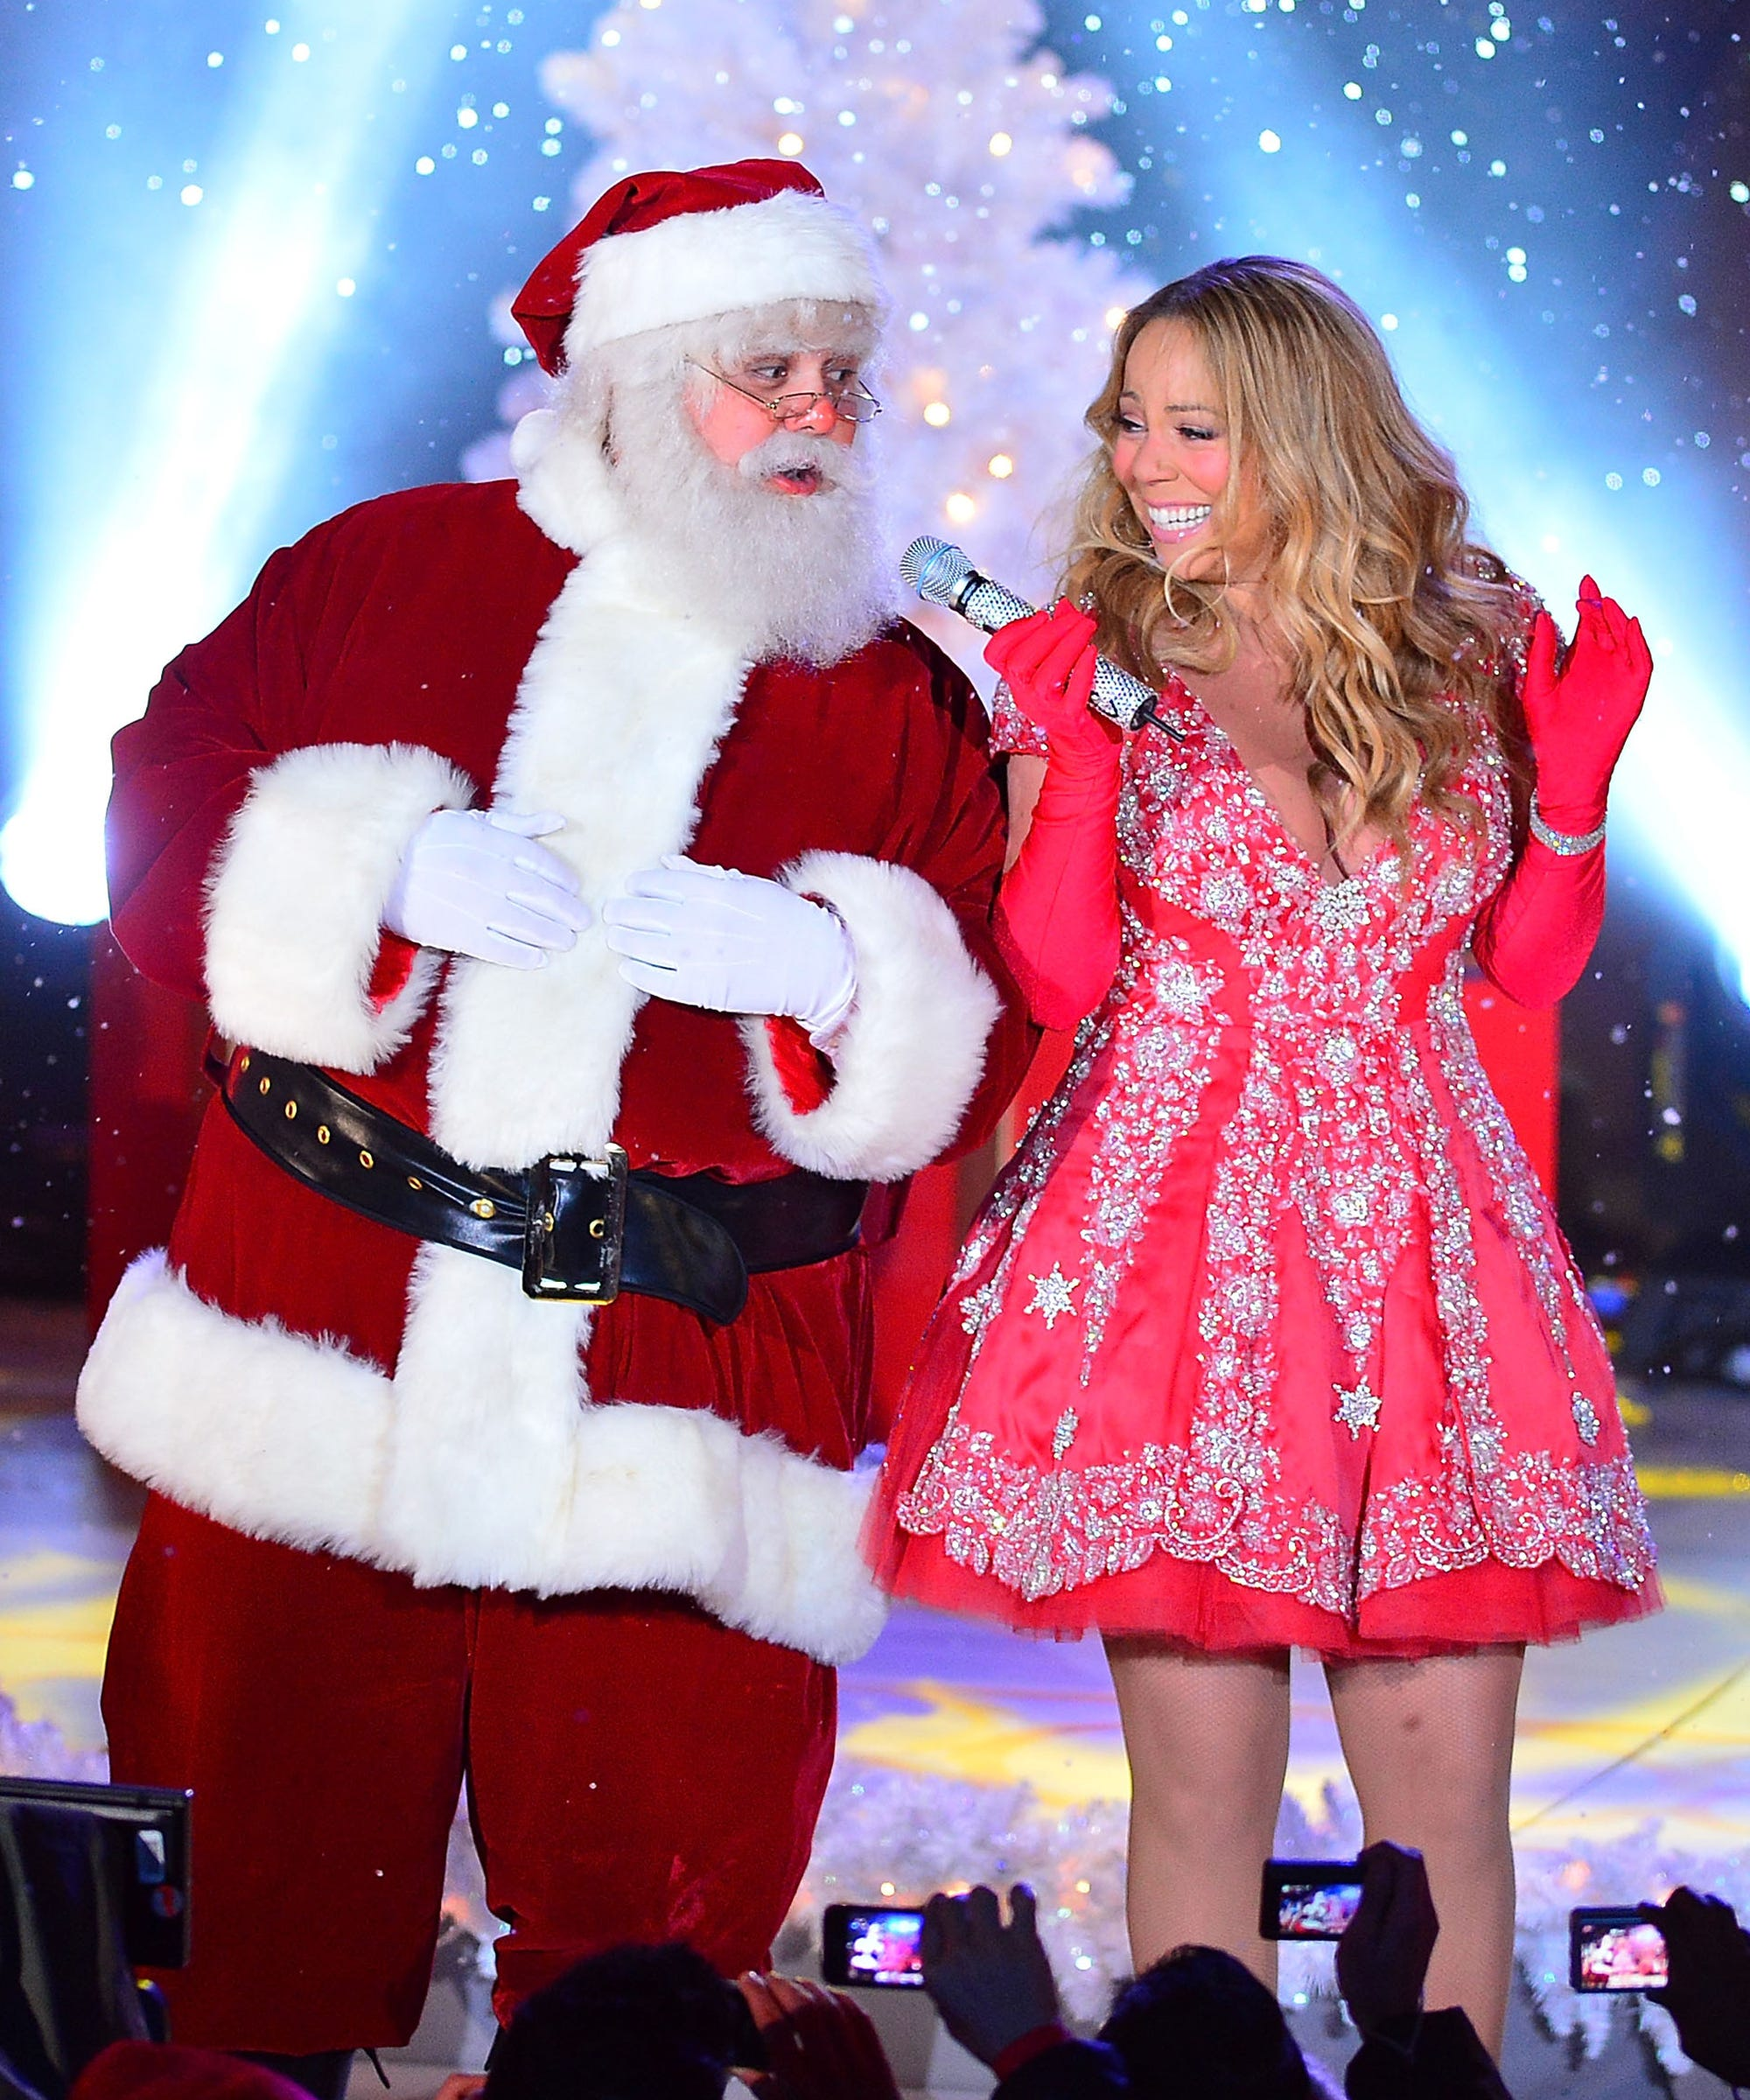 a34a752d3a2f Pop Christmas Songs, Best Holiday Music Popular Covers